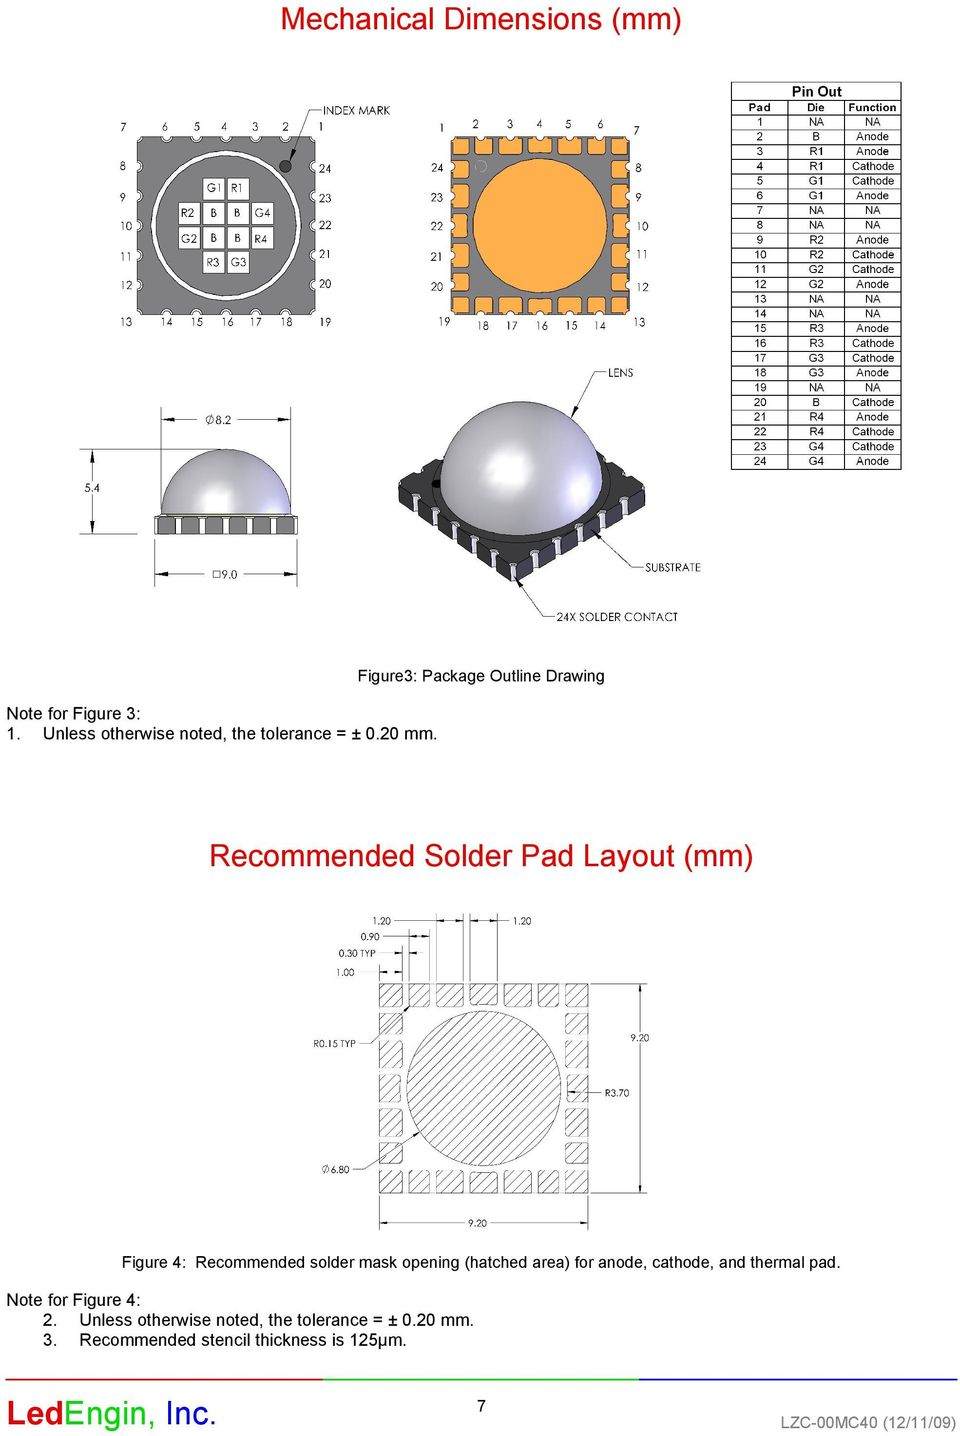 Recommended solder mask opening (hatched area) for anode, cathode, and thermal pad.